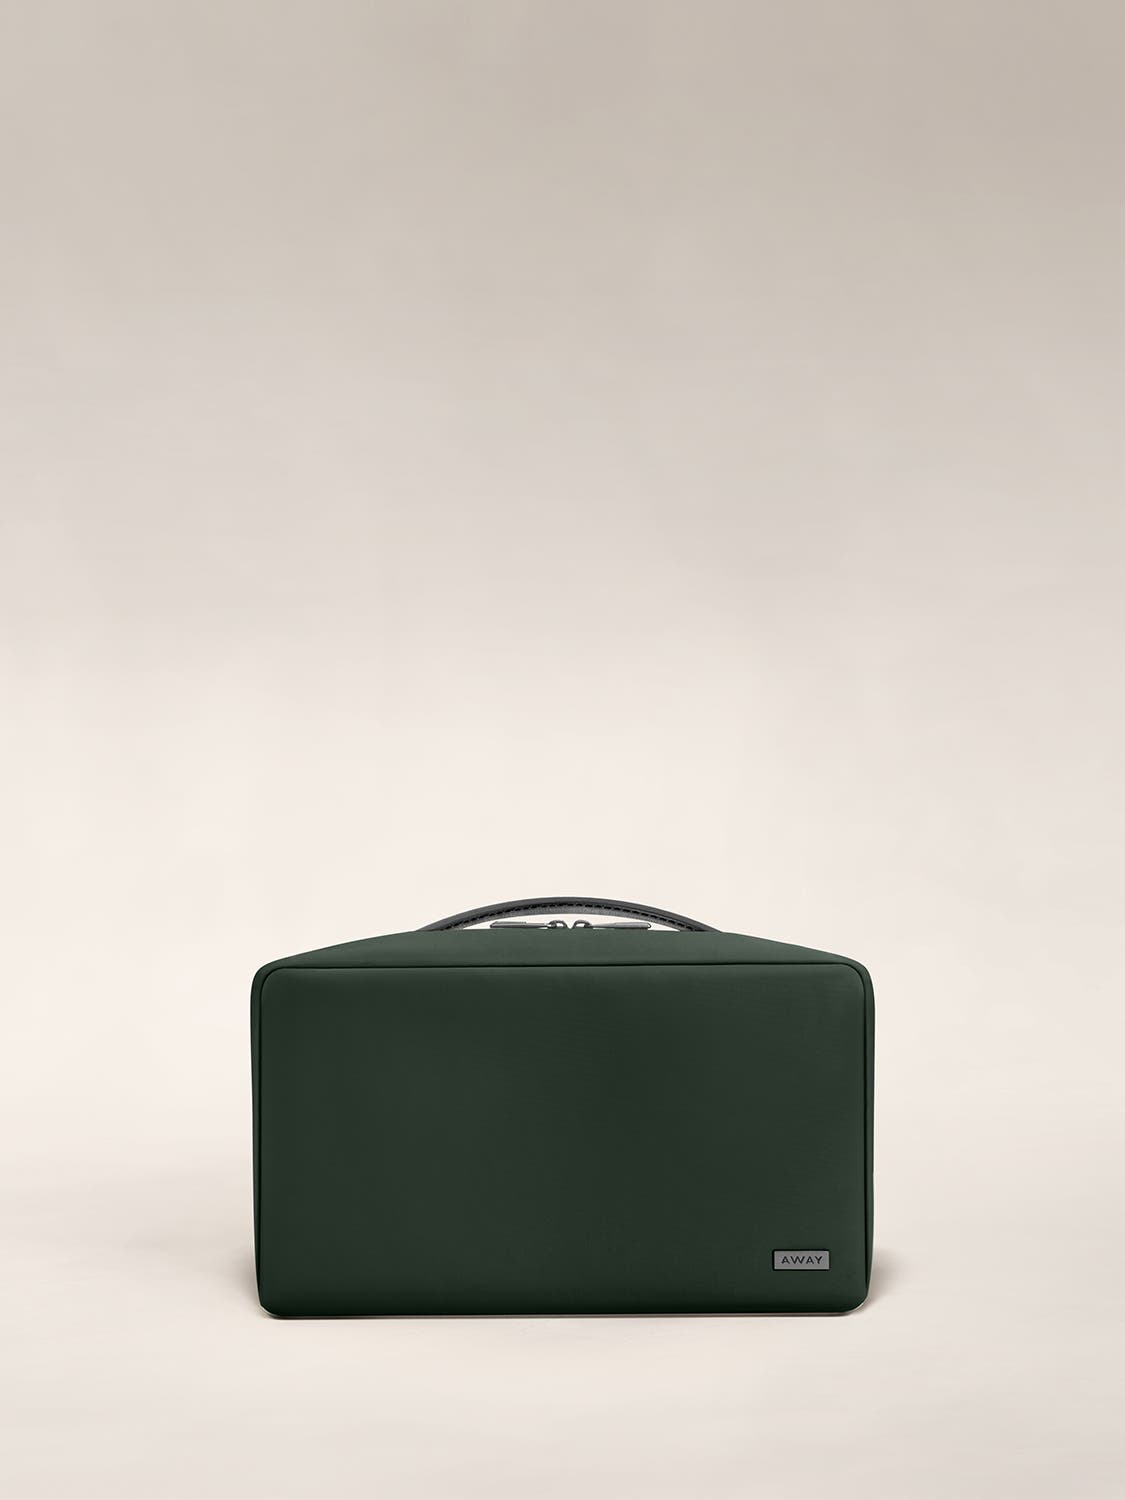 Large travel toiletry bag in the color green.